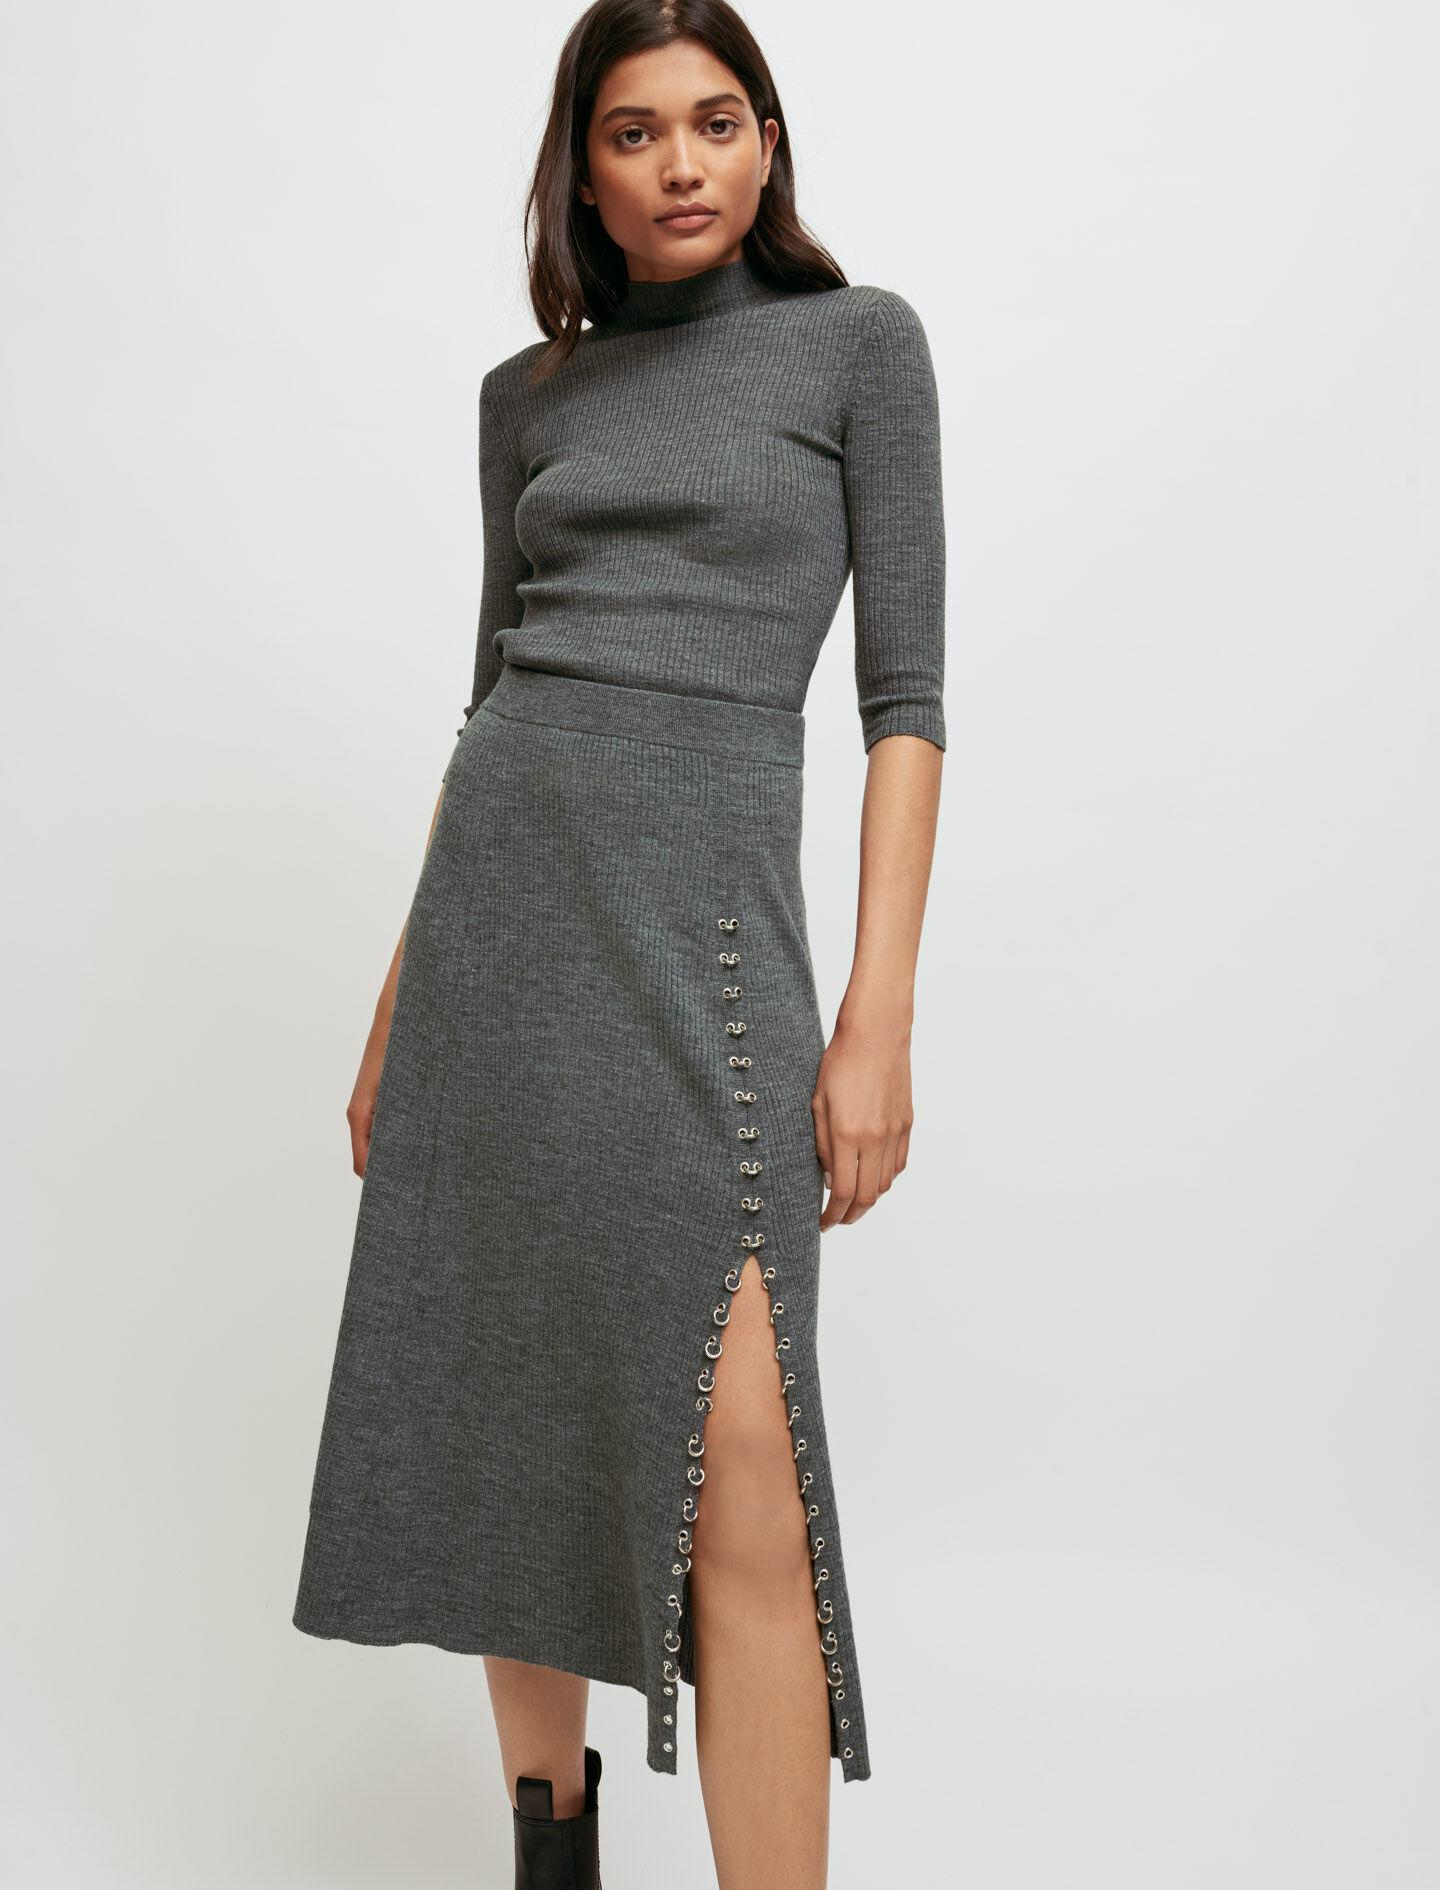 KNITTED SLIT SKIRT WITH PIERCINGS